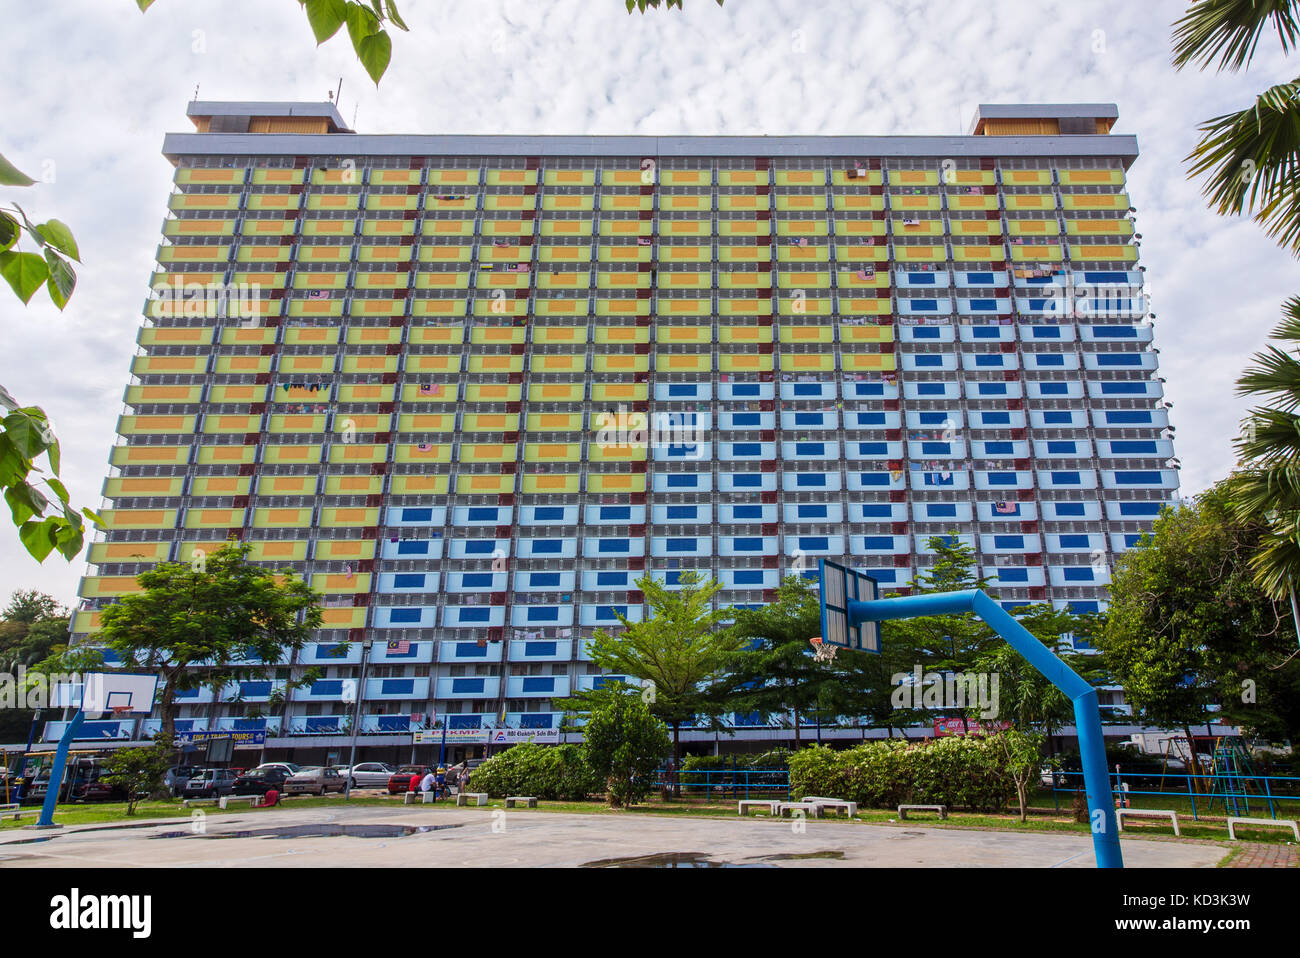 IPOH, MALAYSIA - OCT 01, 2017: Exterior of an old public housing flat built by the government in Ipoh, Malaysia, - Stock Image